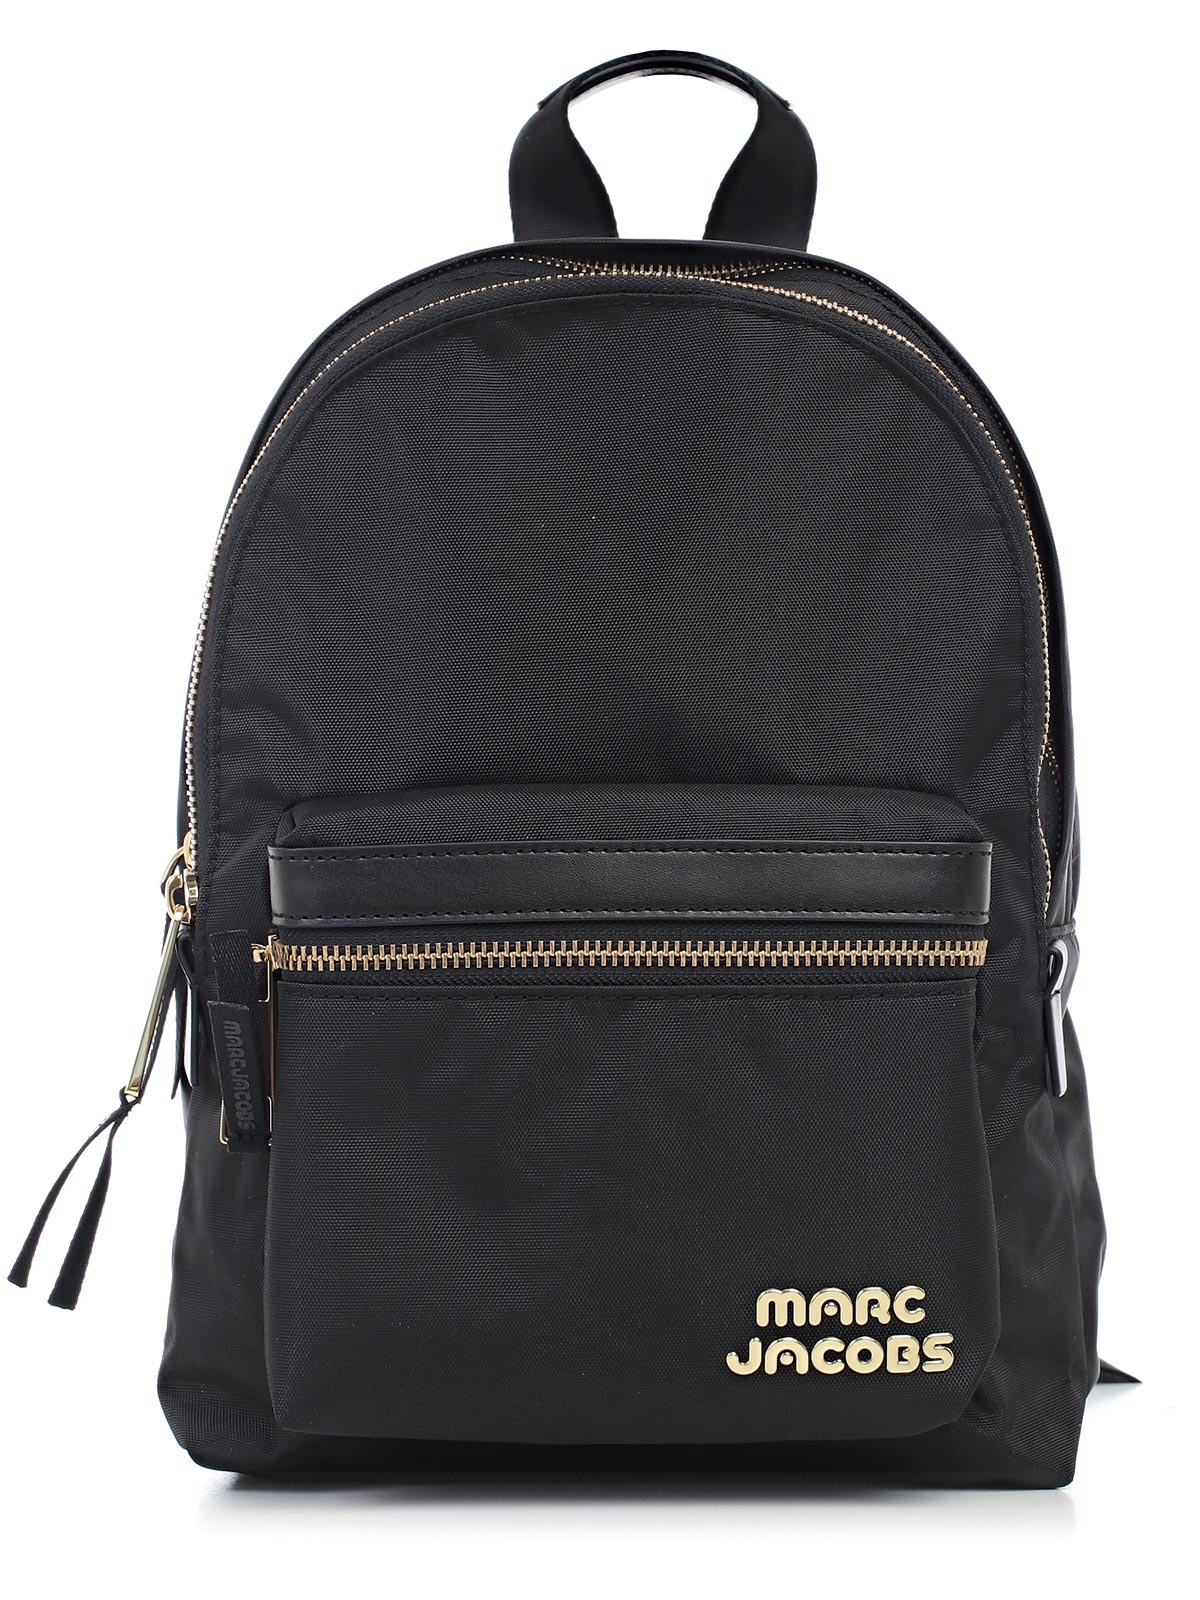 Picture of Marc Jacobs Backpack